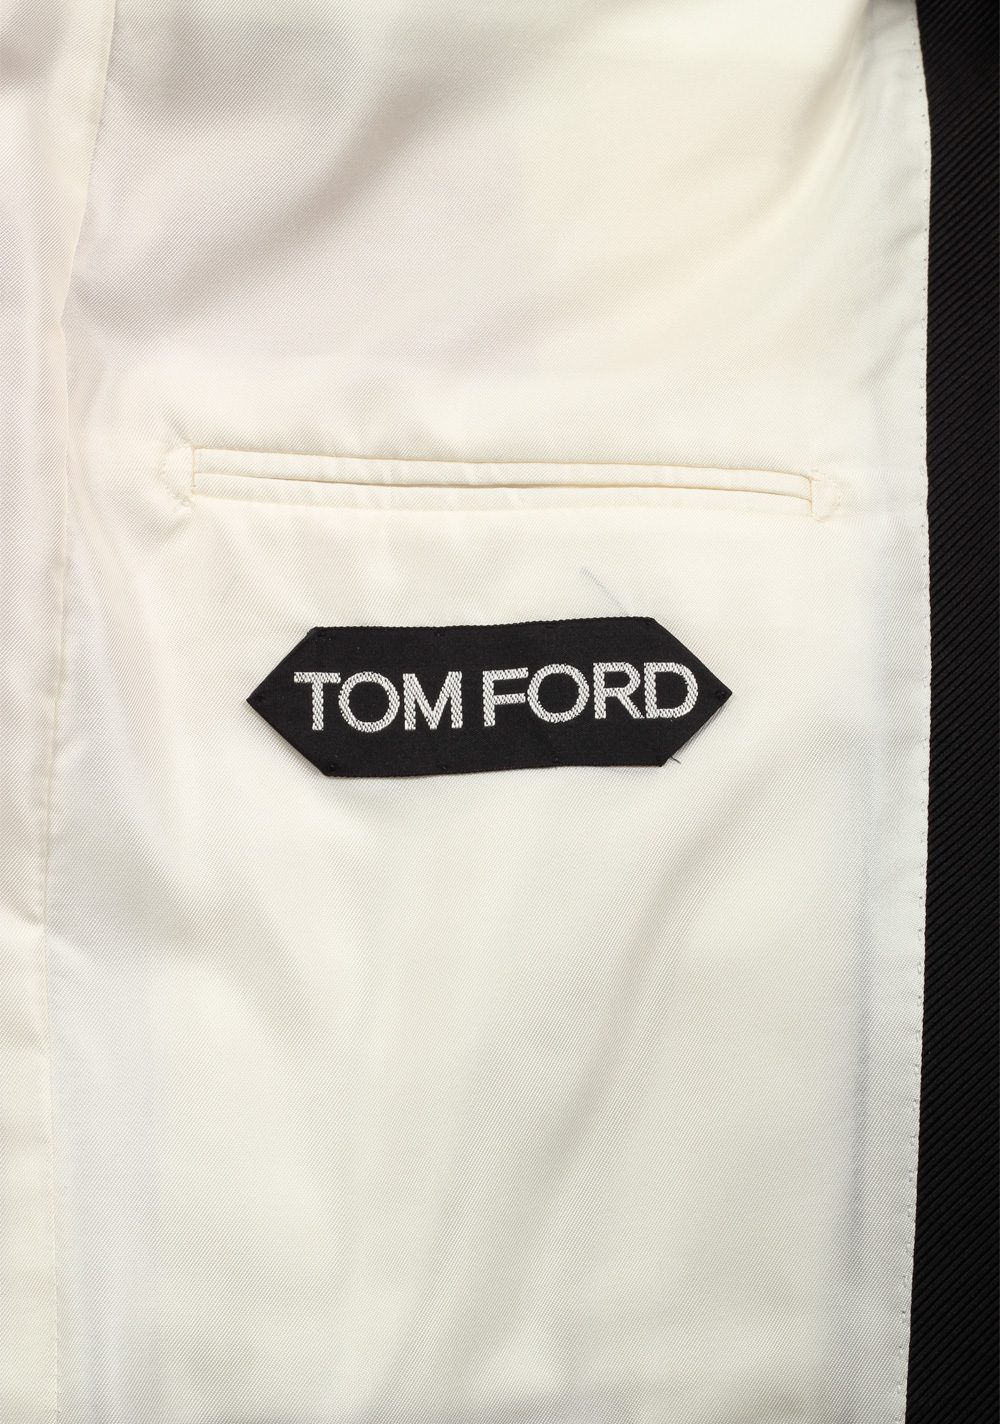 TOM FORD Shelton Lilac Tuxedo Dinner Jacket Size 46 / 36R U.S. | Costume Limité